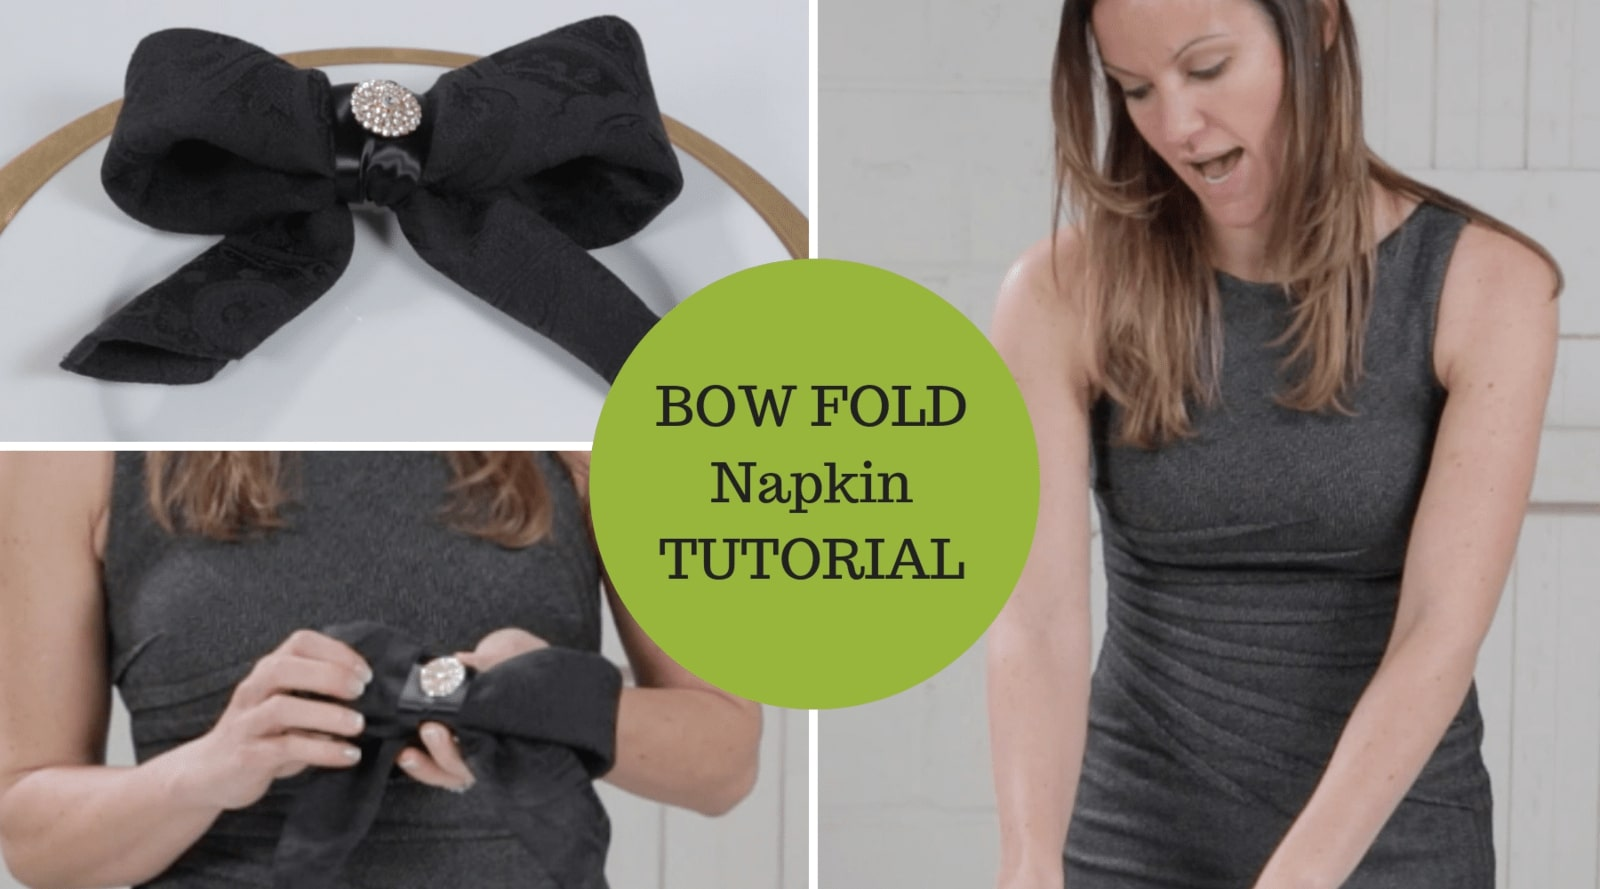 Napkin Folding Tutorial Bow Fold Technique with Added Bling